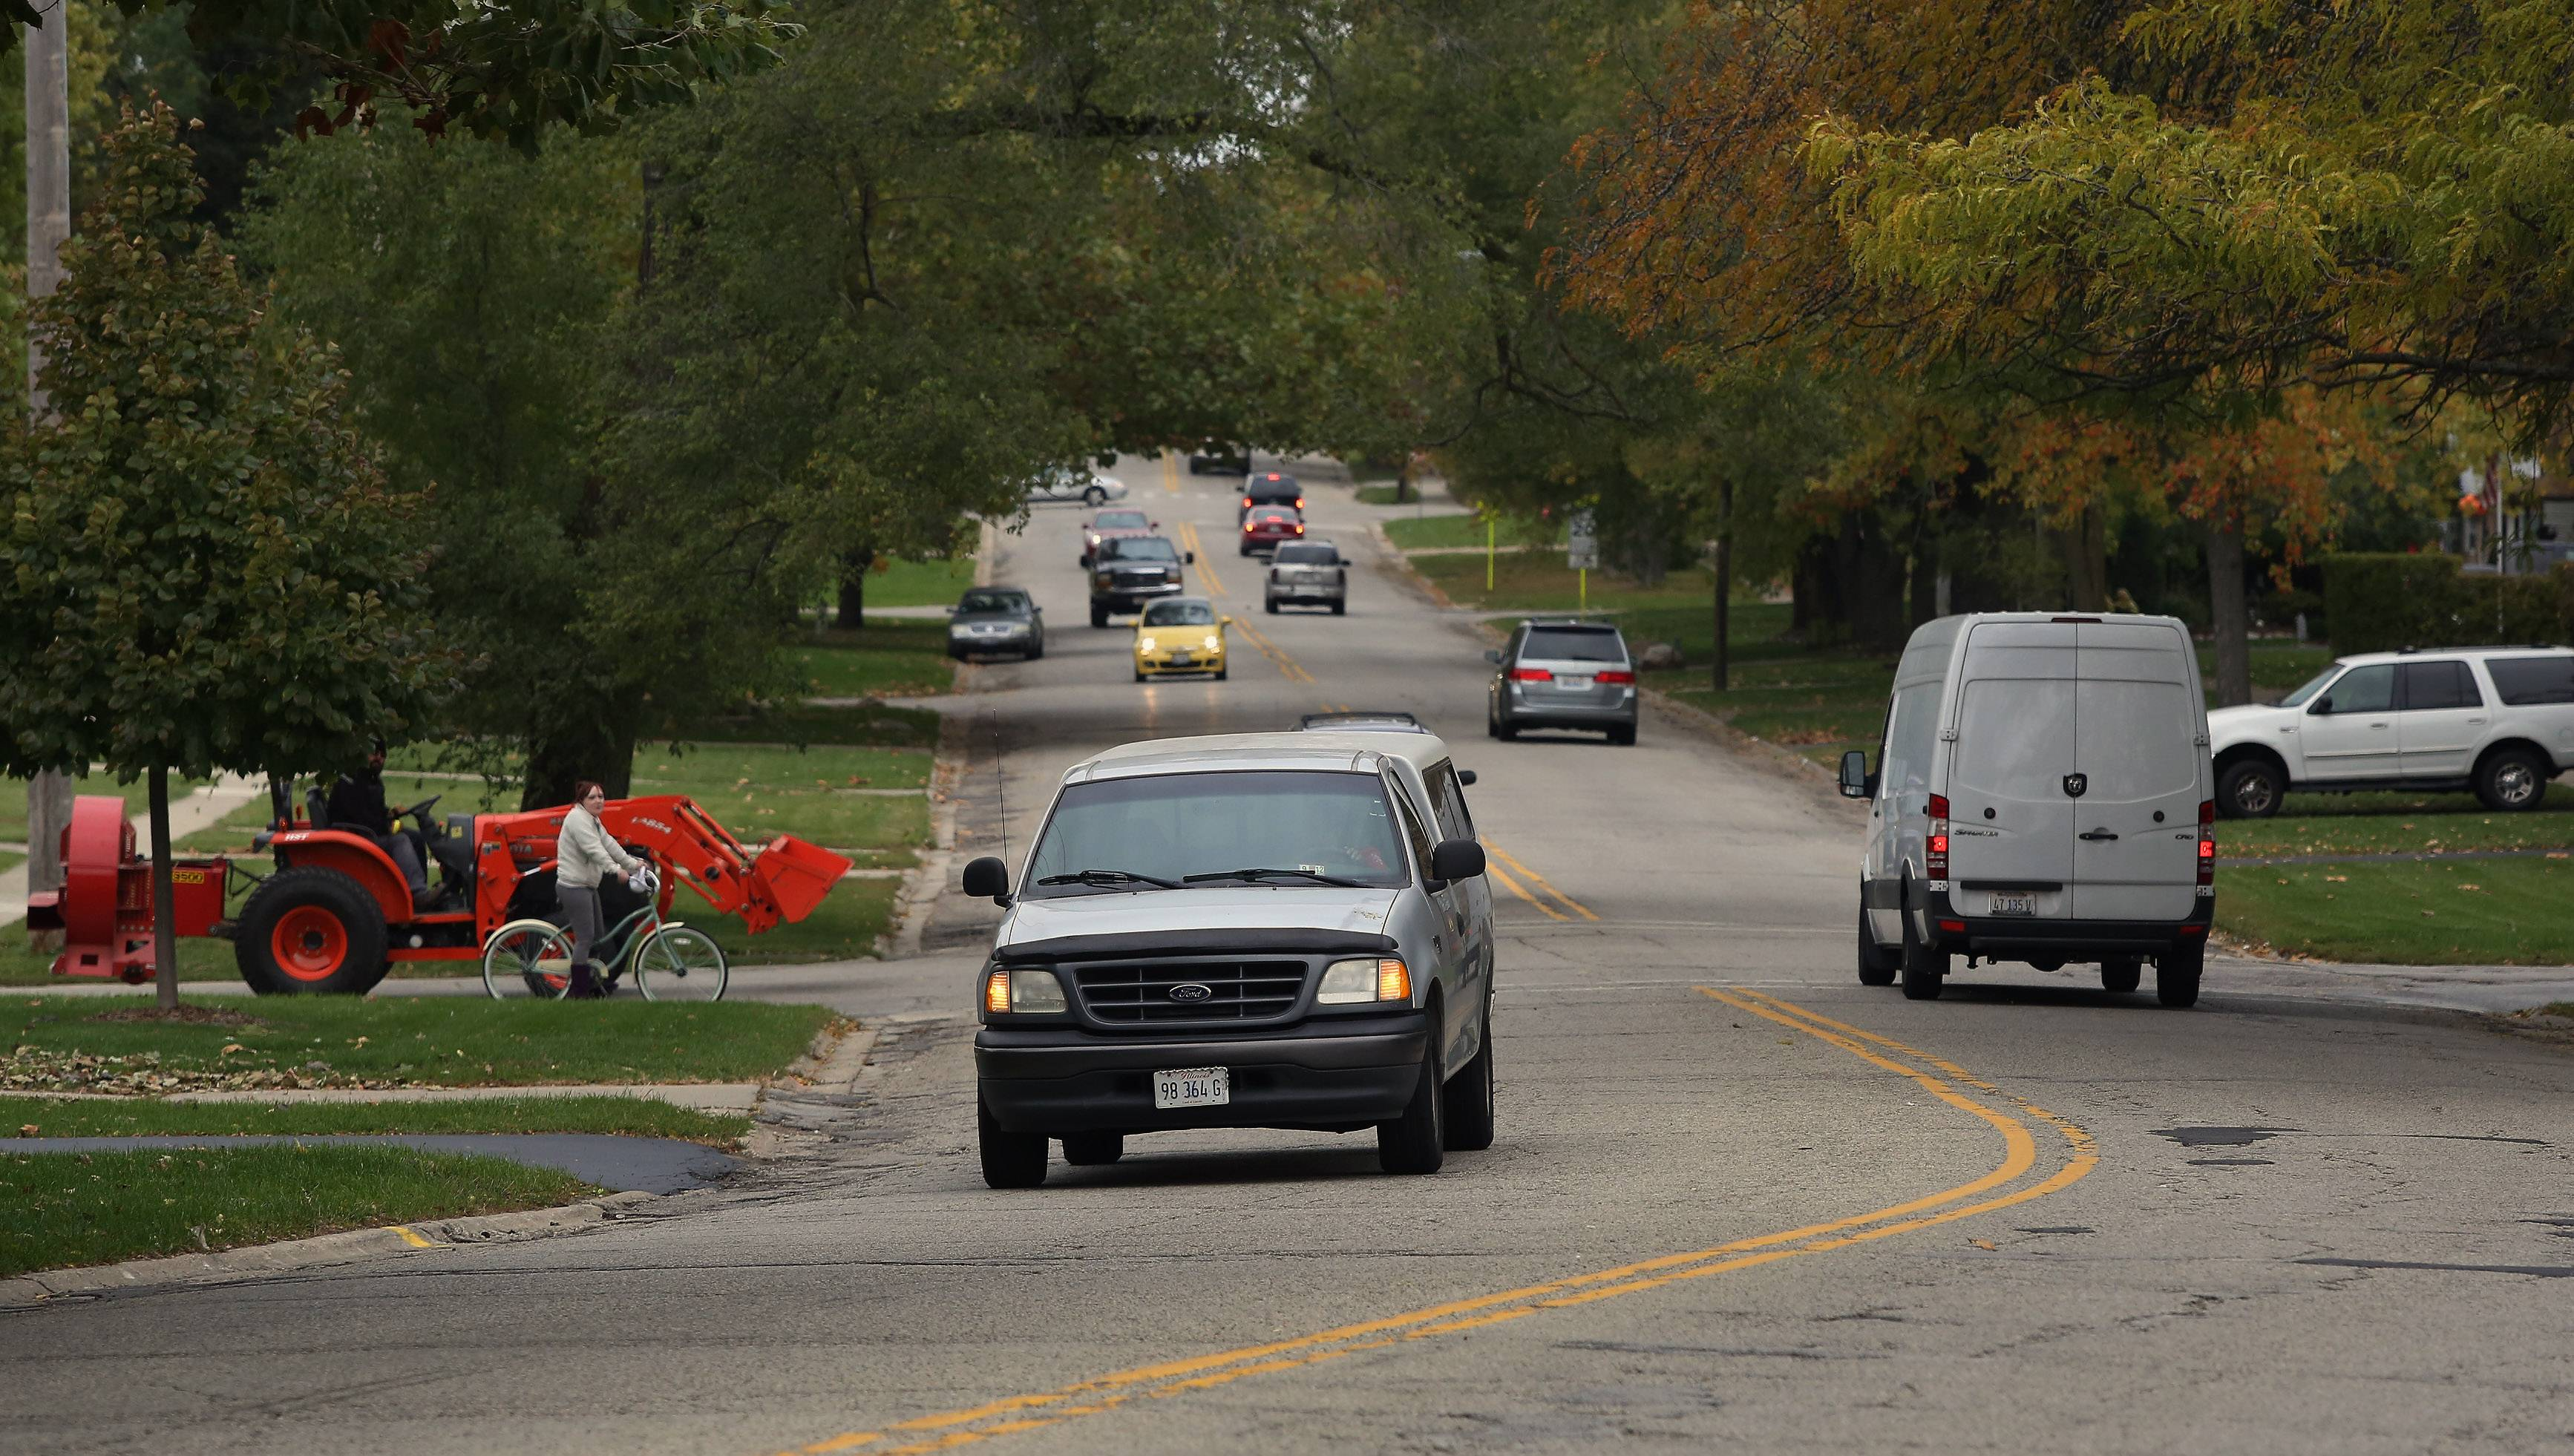 Traffic moves along Hawley Street in Mundelein in this file photo. Officials want to widen and repave the road.